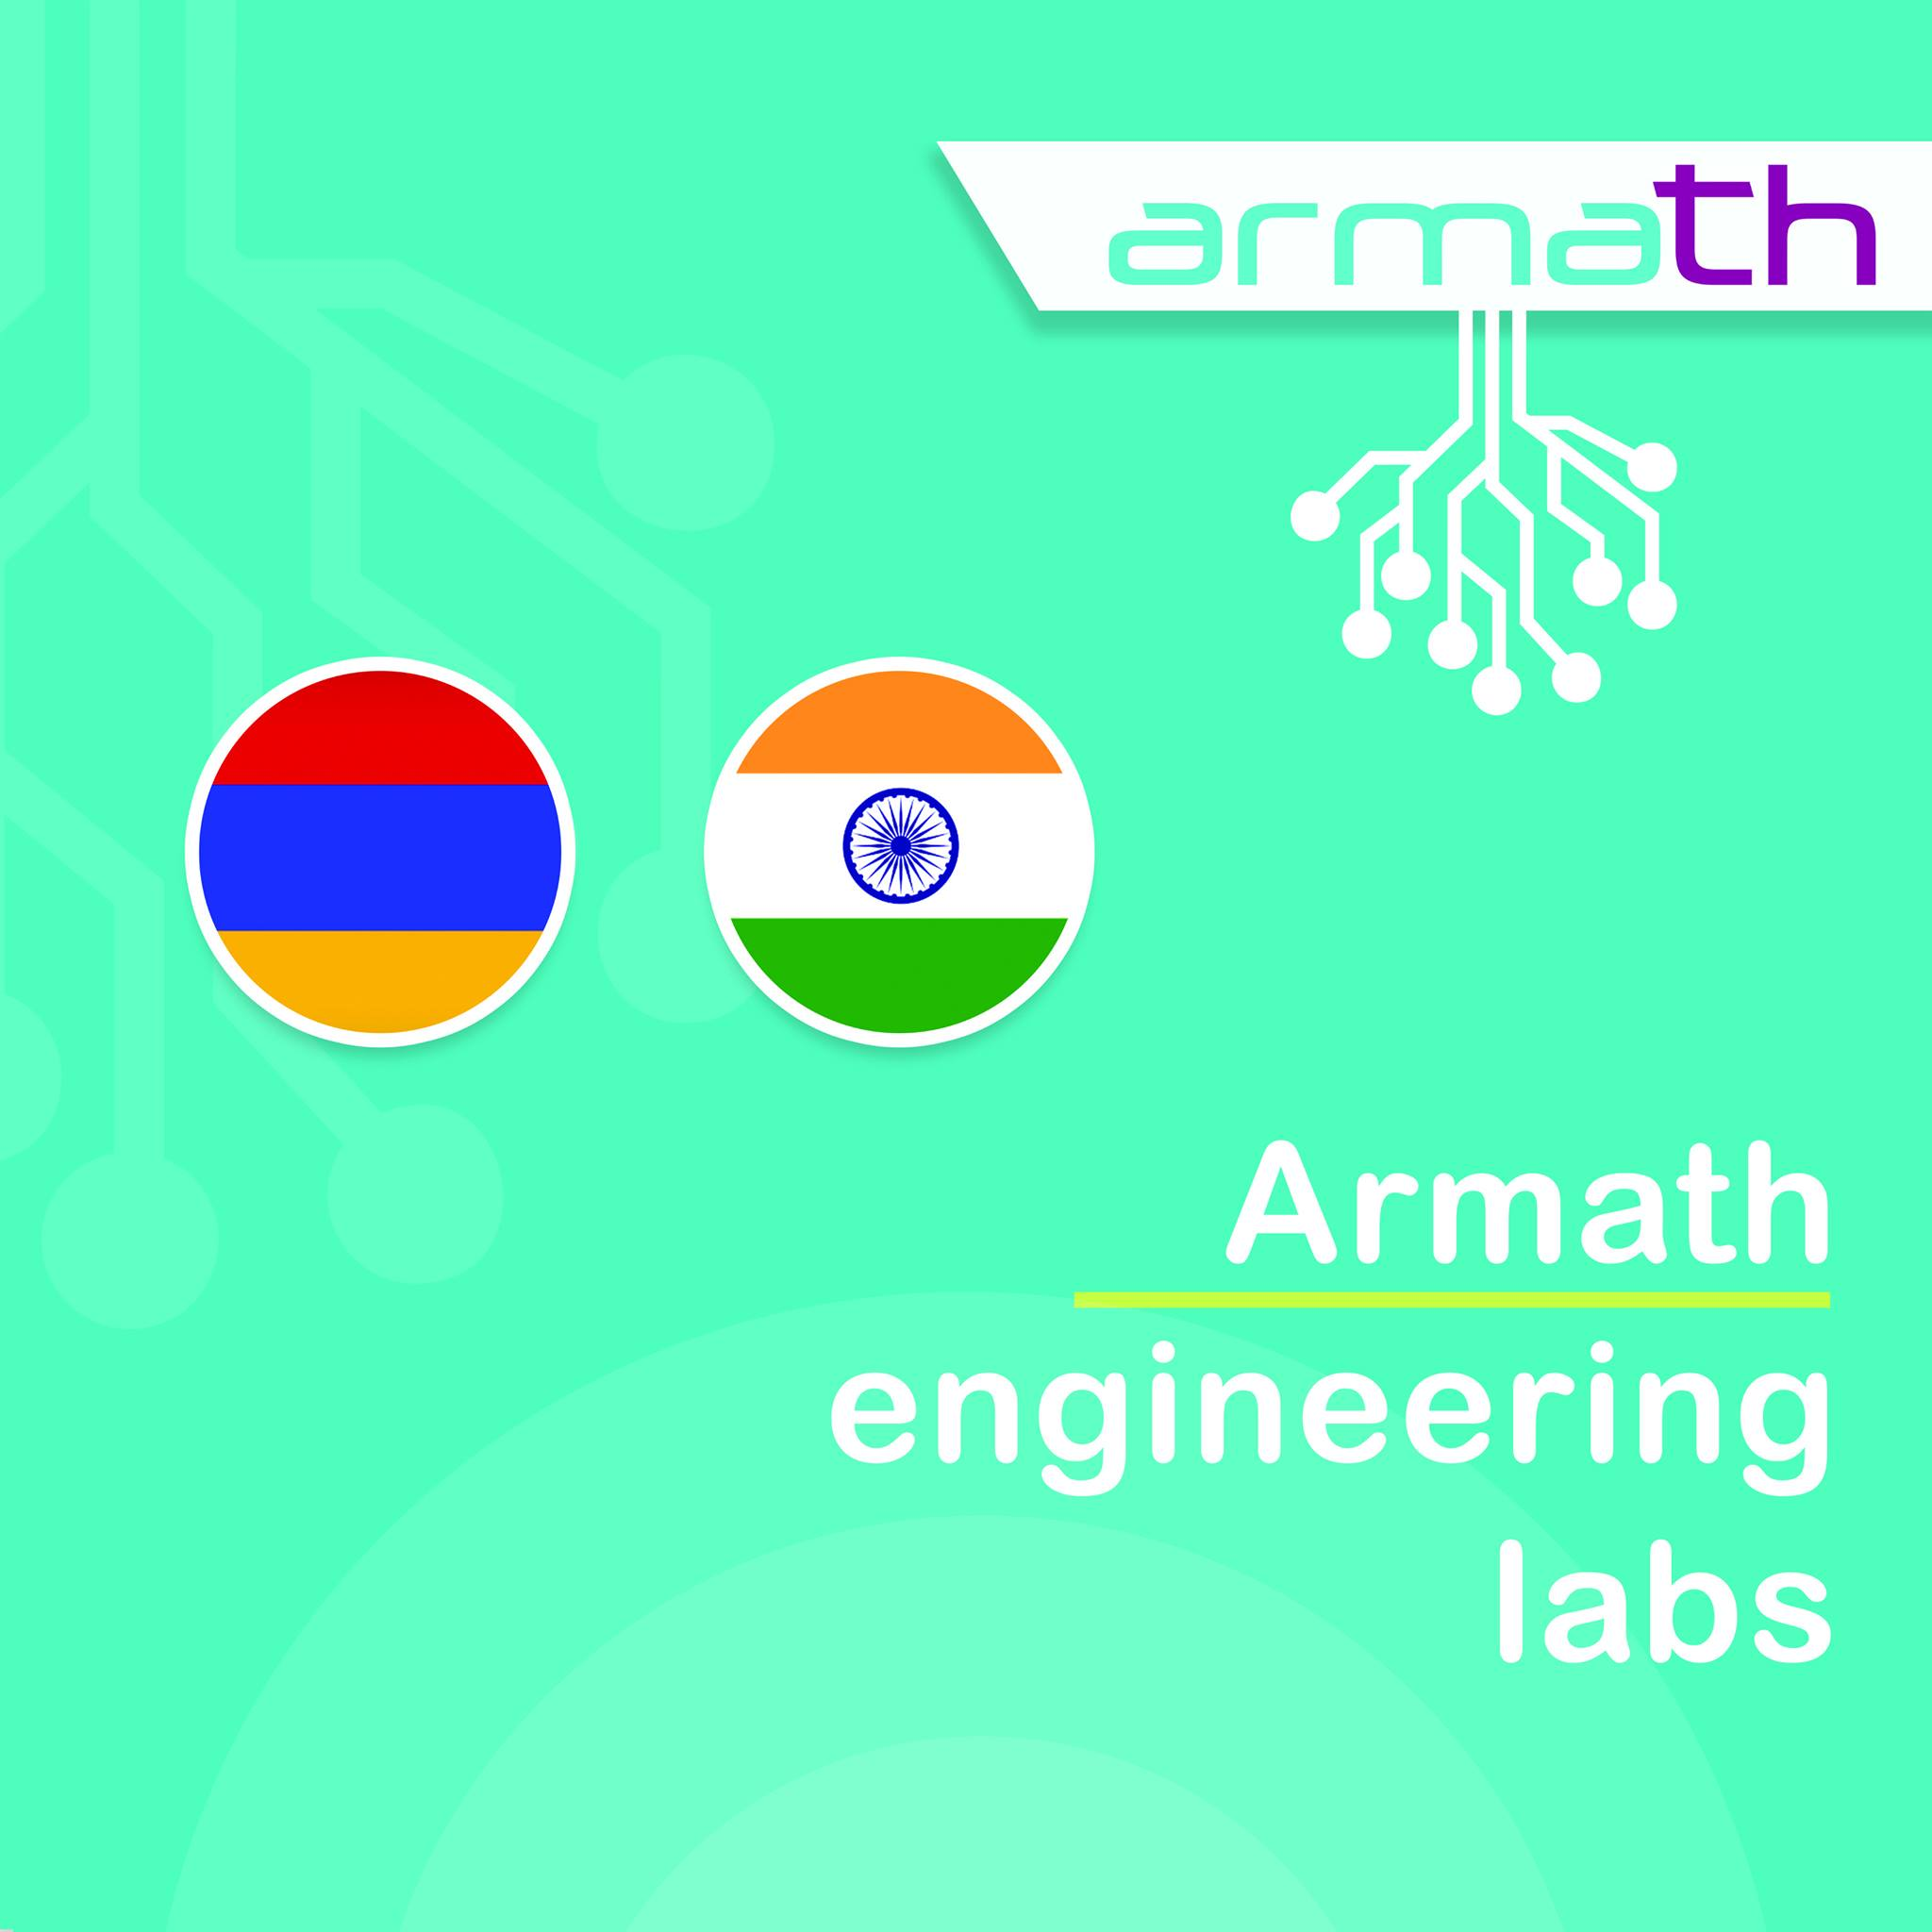 The first Armath to be opened in India